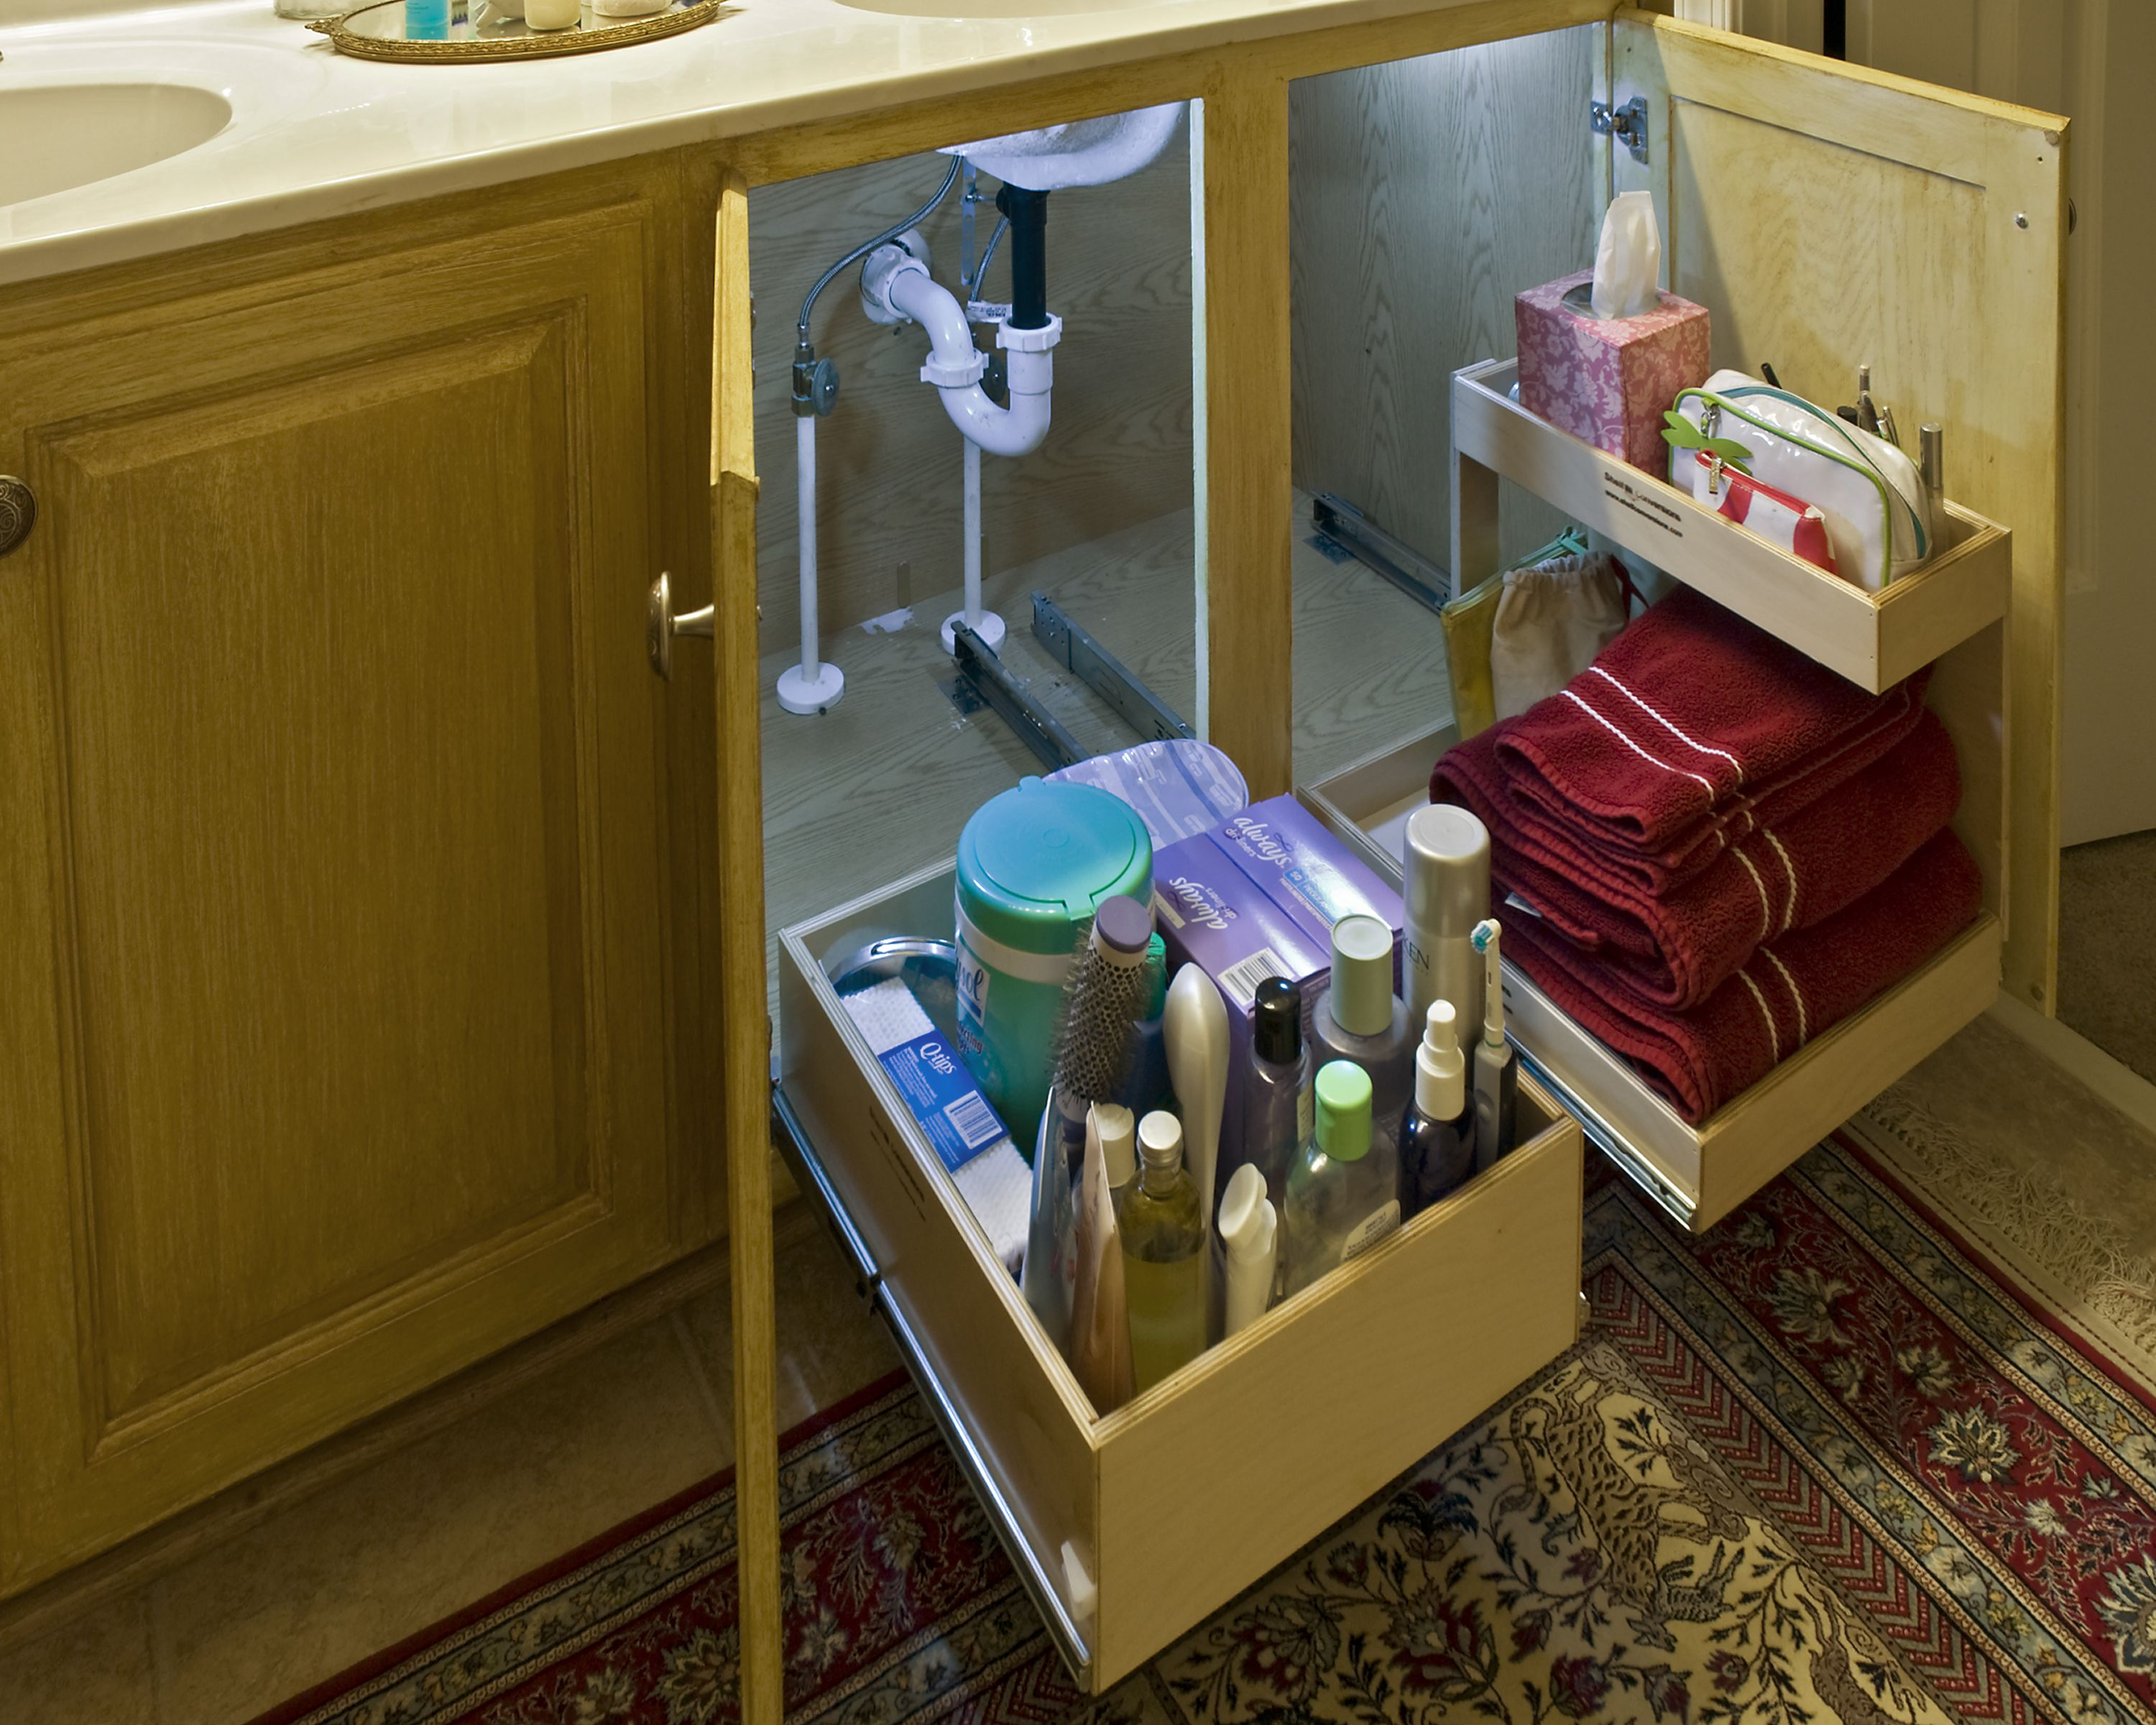 Bathroom cabinet storage solutions - 17 Best Images About Bathroom Organization On Pinterest Under Bathroom Sink Storage Cabinets And Bathroom Vanity Storage